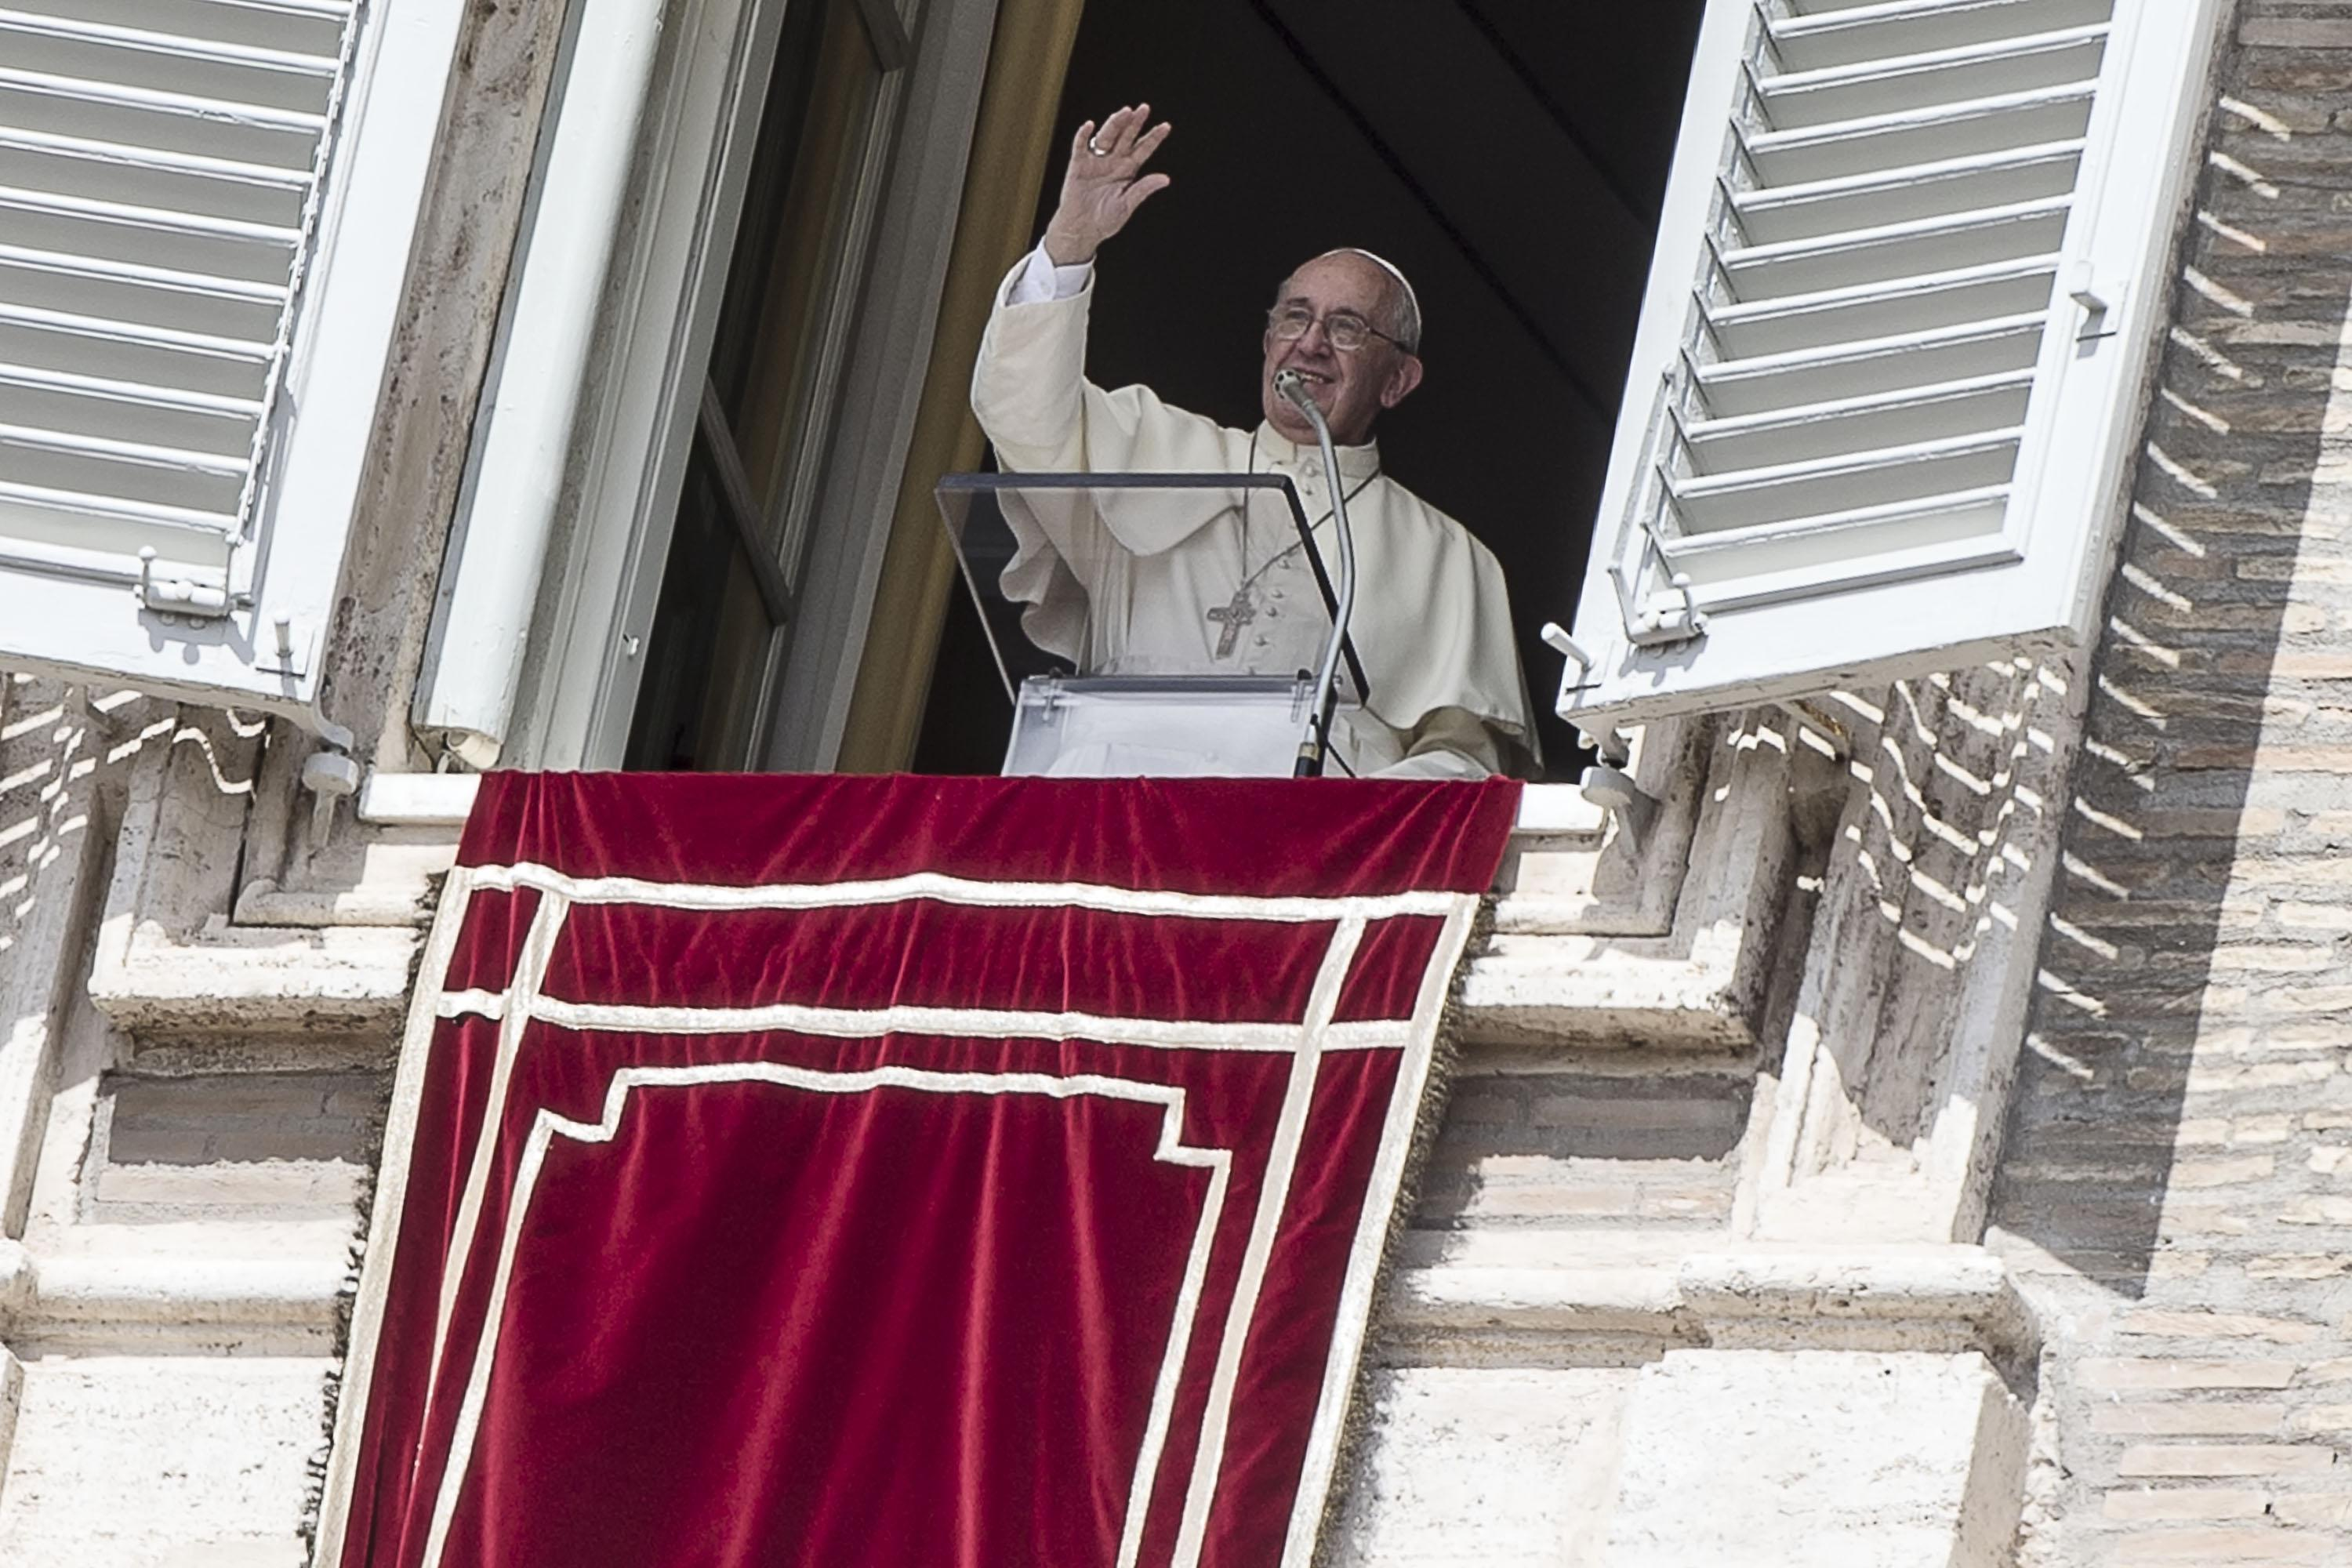 Pope Francis greets faithful during the Angelus prayer in St. Peter's Square